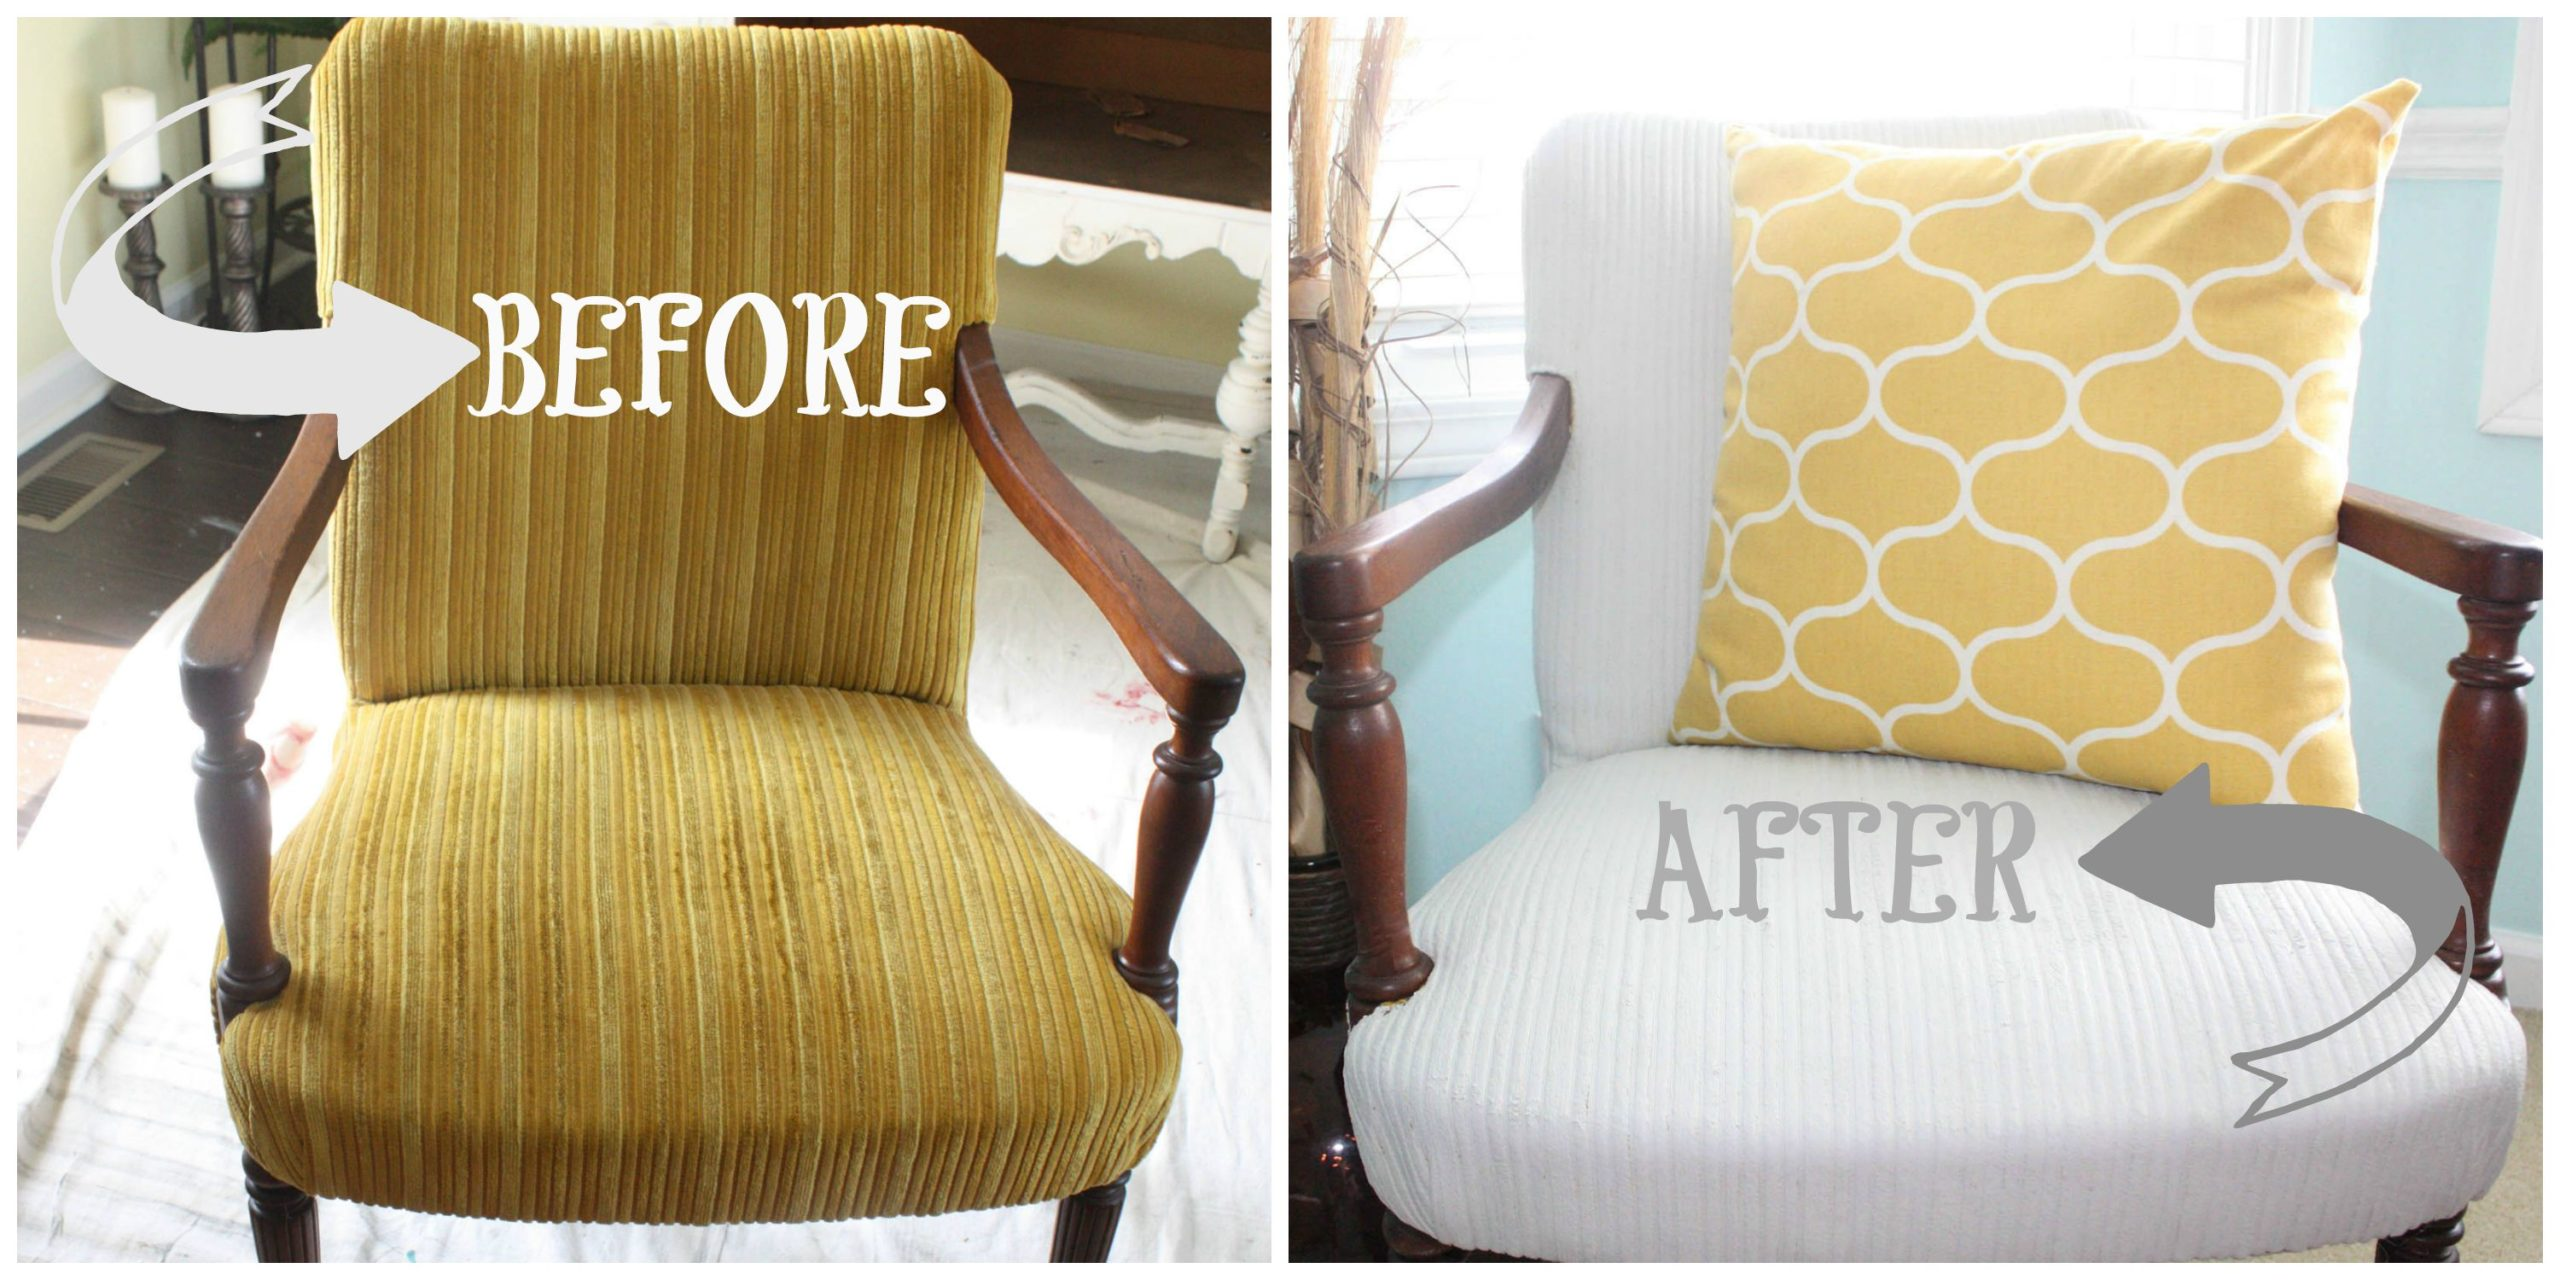 Pin for Later fabric Painted Chair